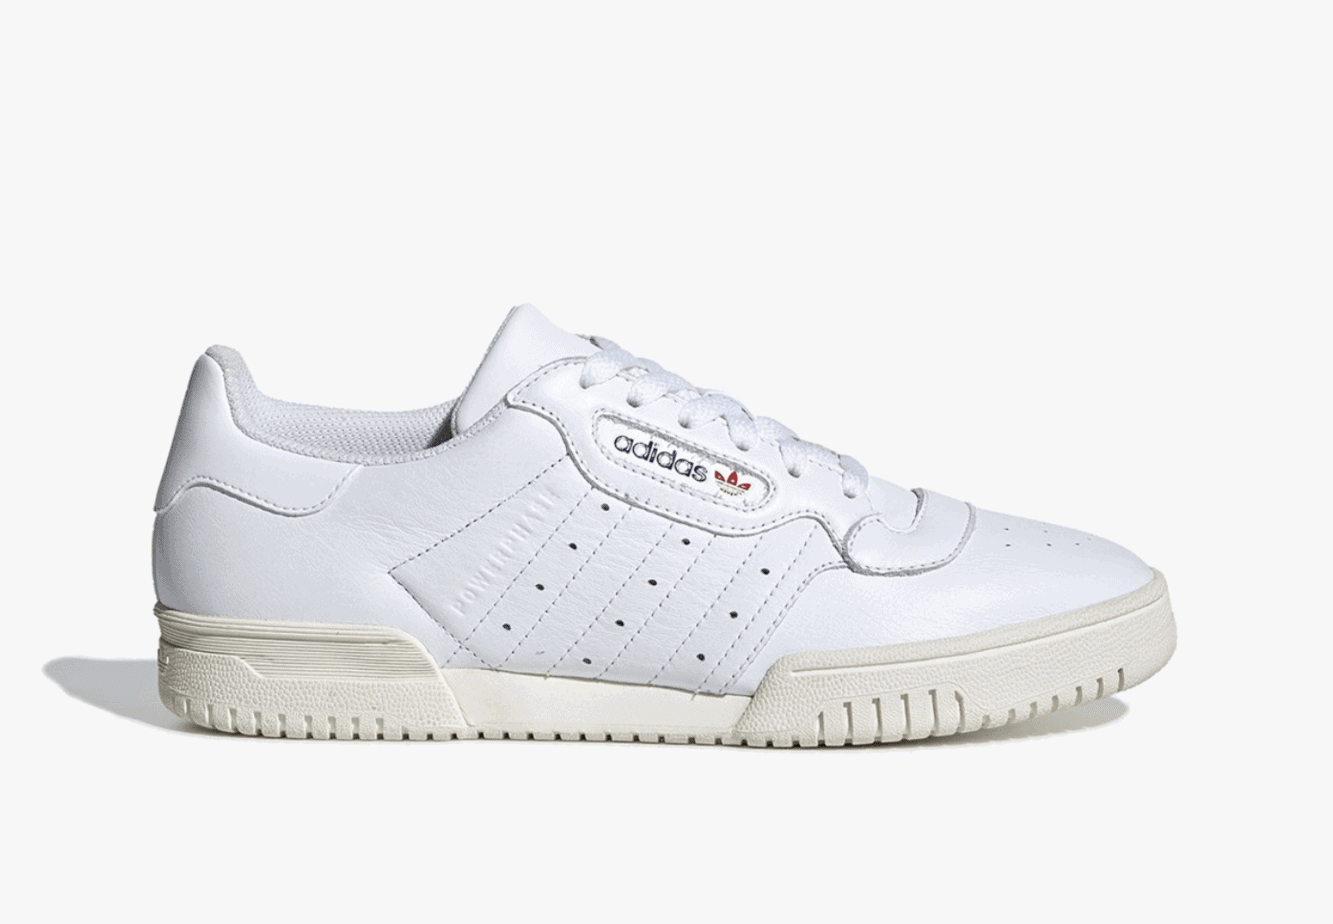 807c3107d7dc adidas Originals Powerphase 2019 Release Info - JustFreshKicks